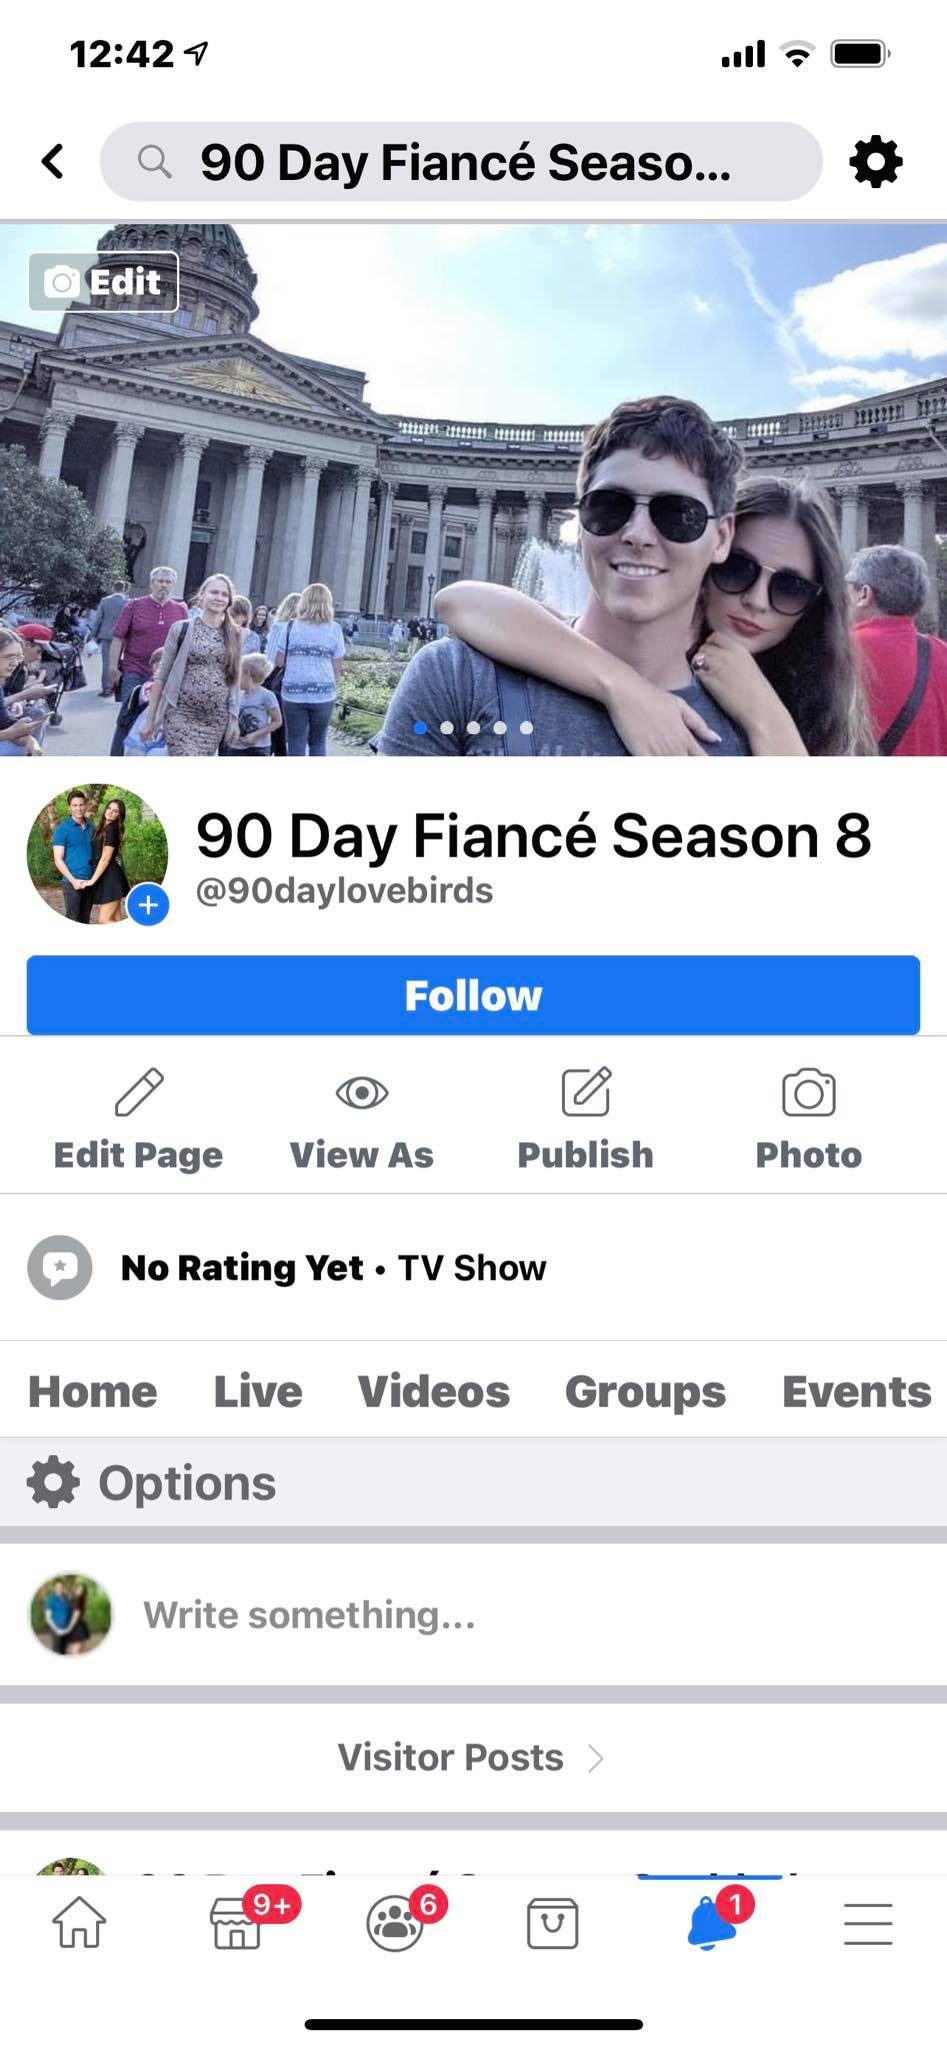 90 Day Fiance star 'Aspen' posts about her sister